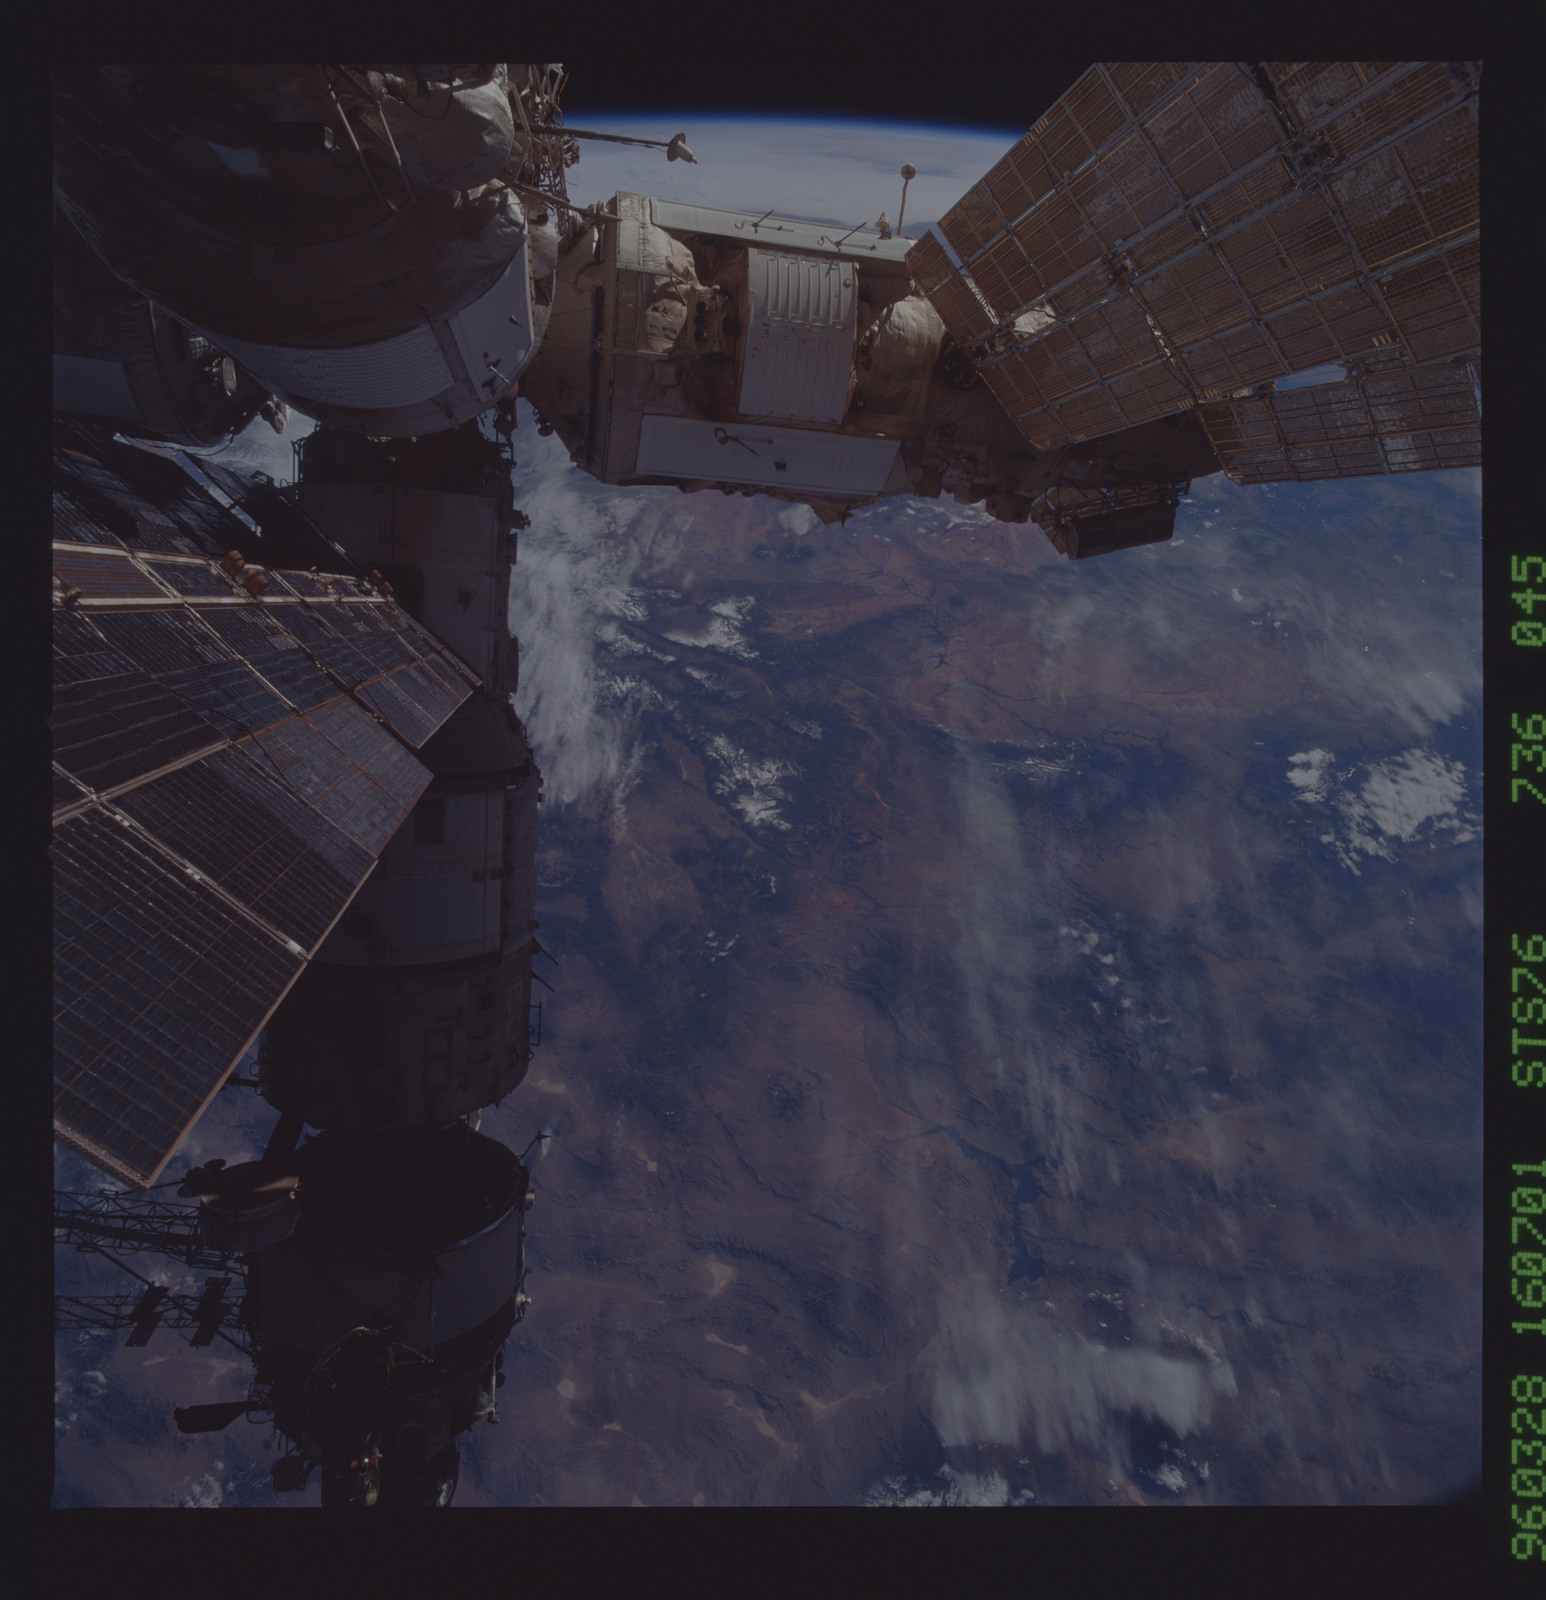 STS076-736-045 - STS-076 - Mir Space Station views taken during STS-76 mission